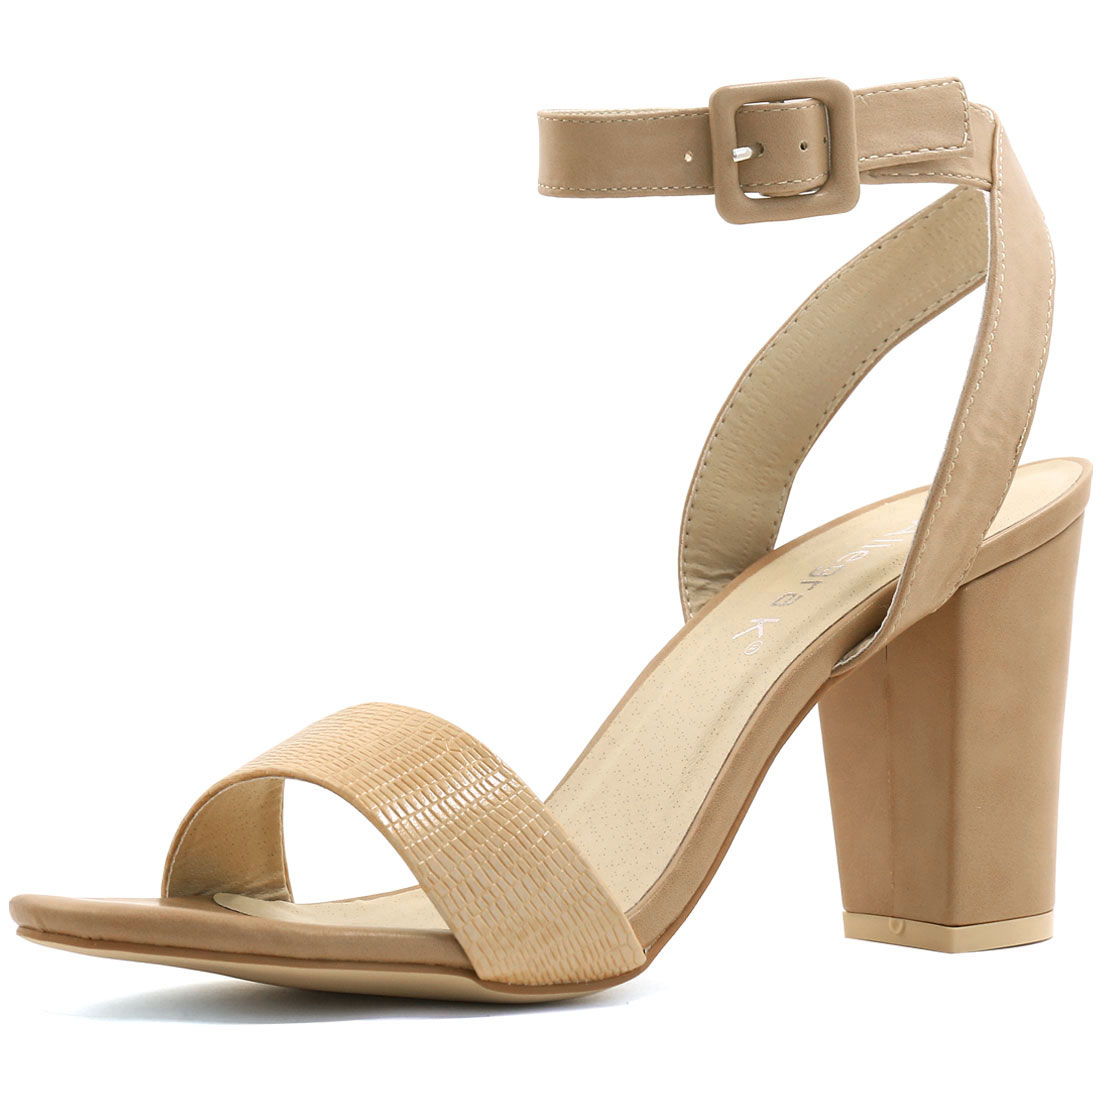 Woman Textured Vamp Chunky Heel Ankle Strap Sandals Tan US 6